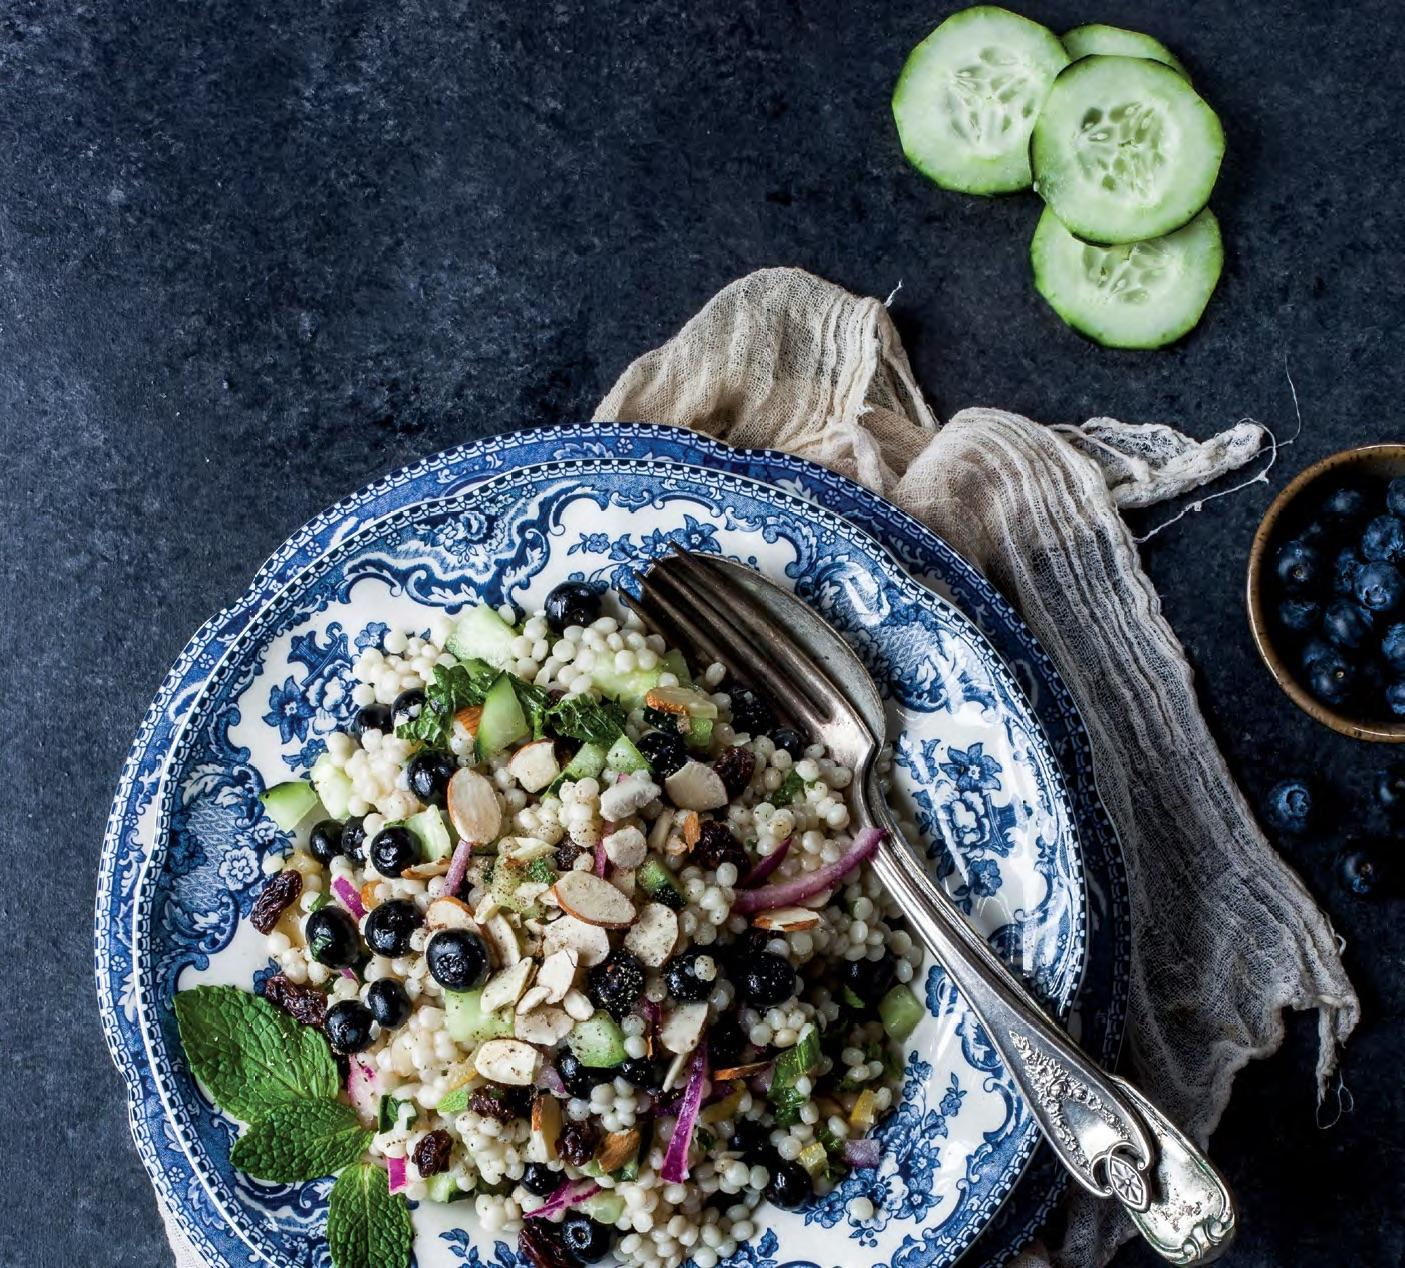 ISRAELI COUSCOUS WITH BLUEBERRIES, MINT, AND PRESERVED LEMON Enchanted Living Magazine